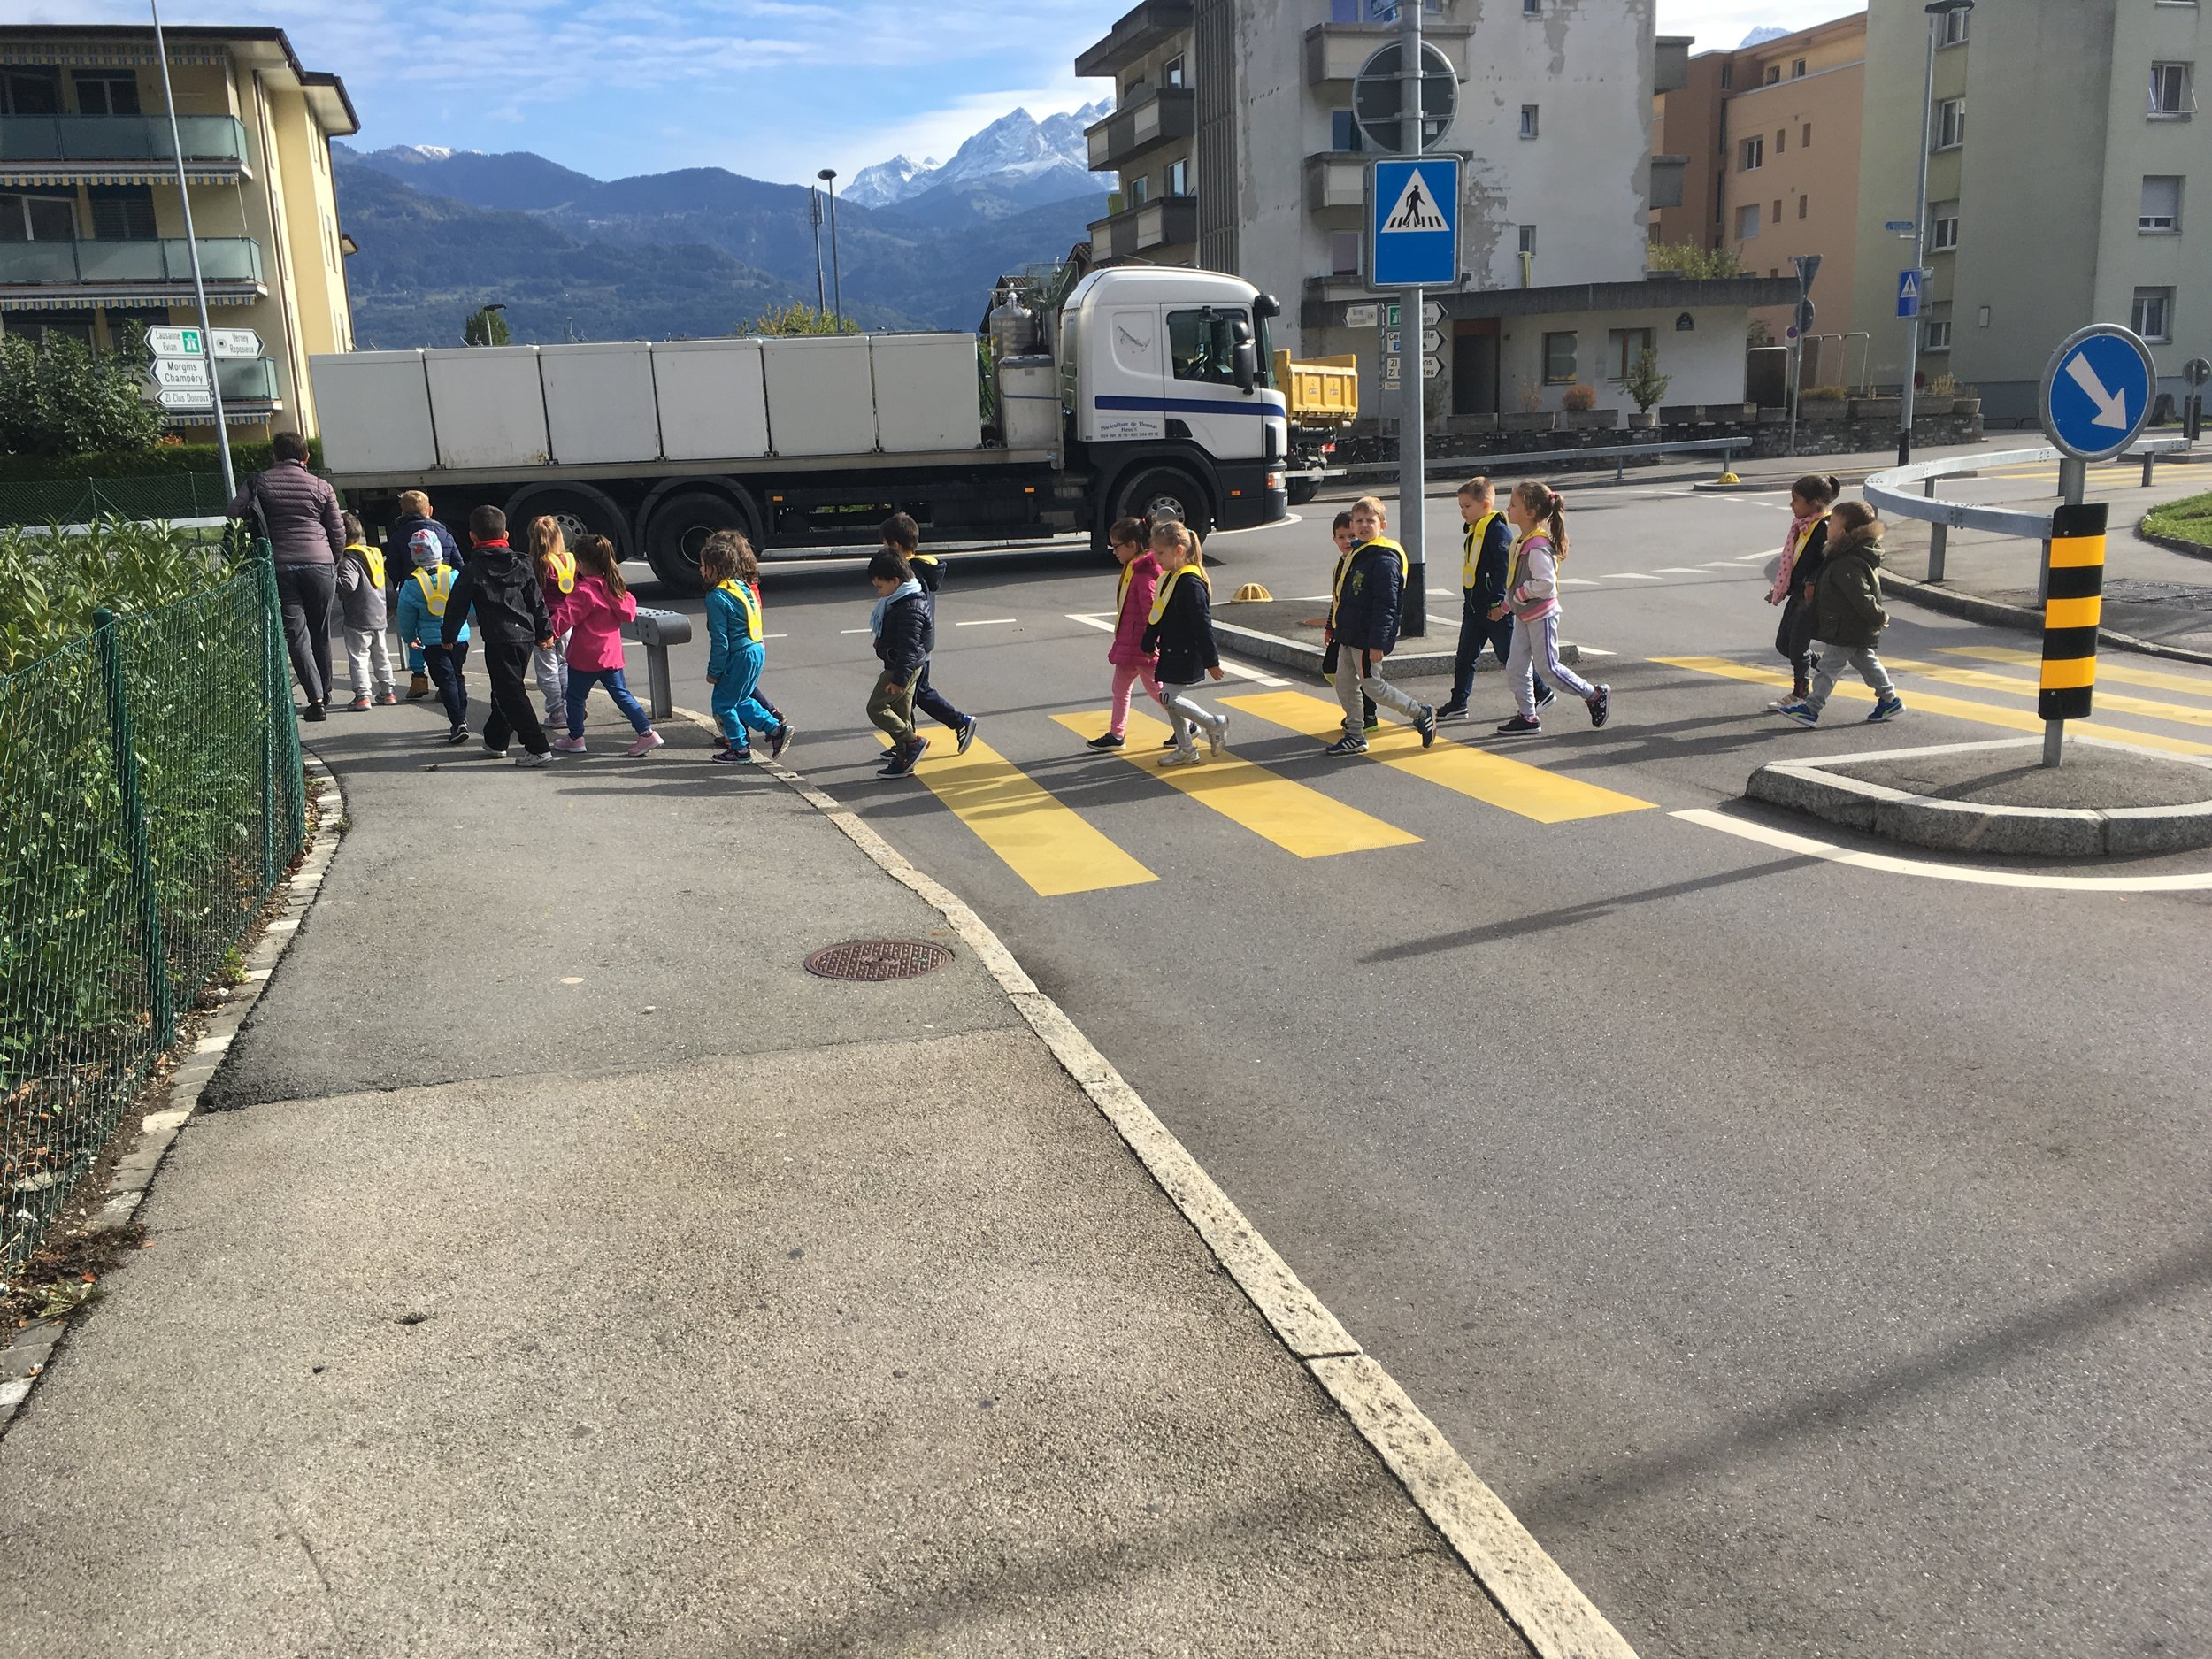 in true Swiss style, everyone lined up two by two ratio of 1 teacher to her class and getting to where they need to go. Those little reflectors all the rage for this age group - anyone taller than A and they become too cool for school as it were.